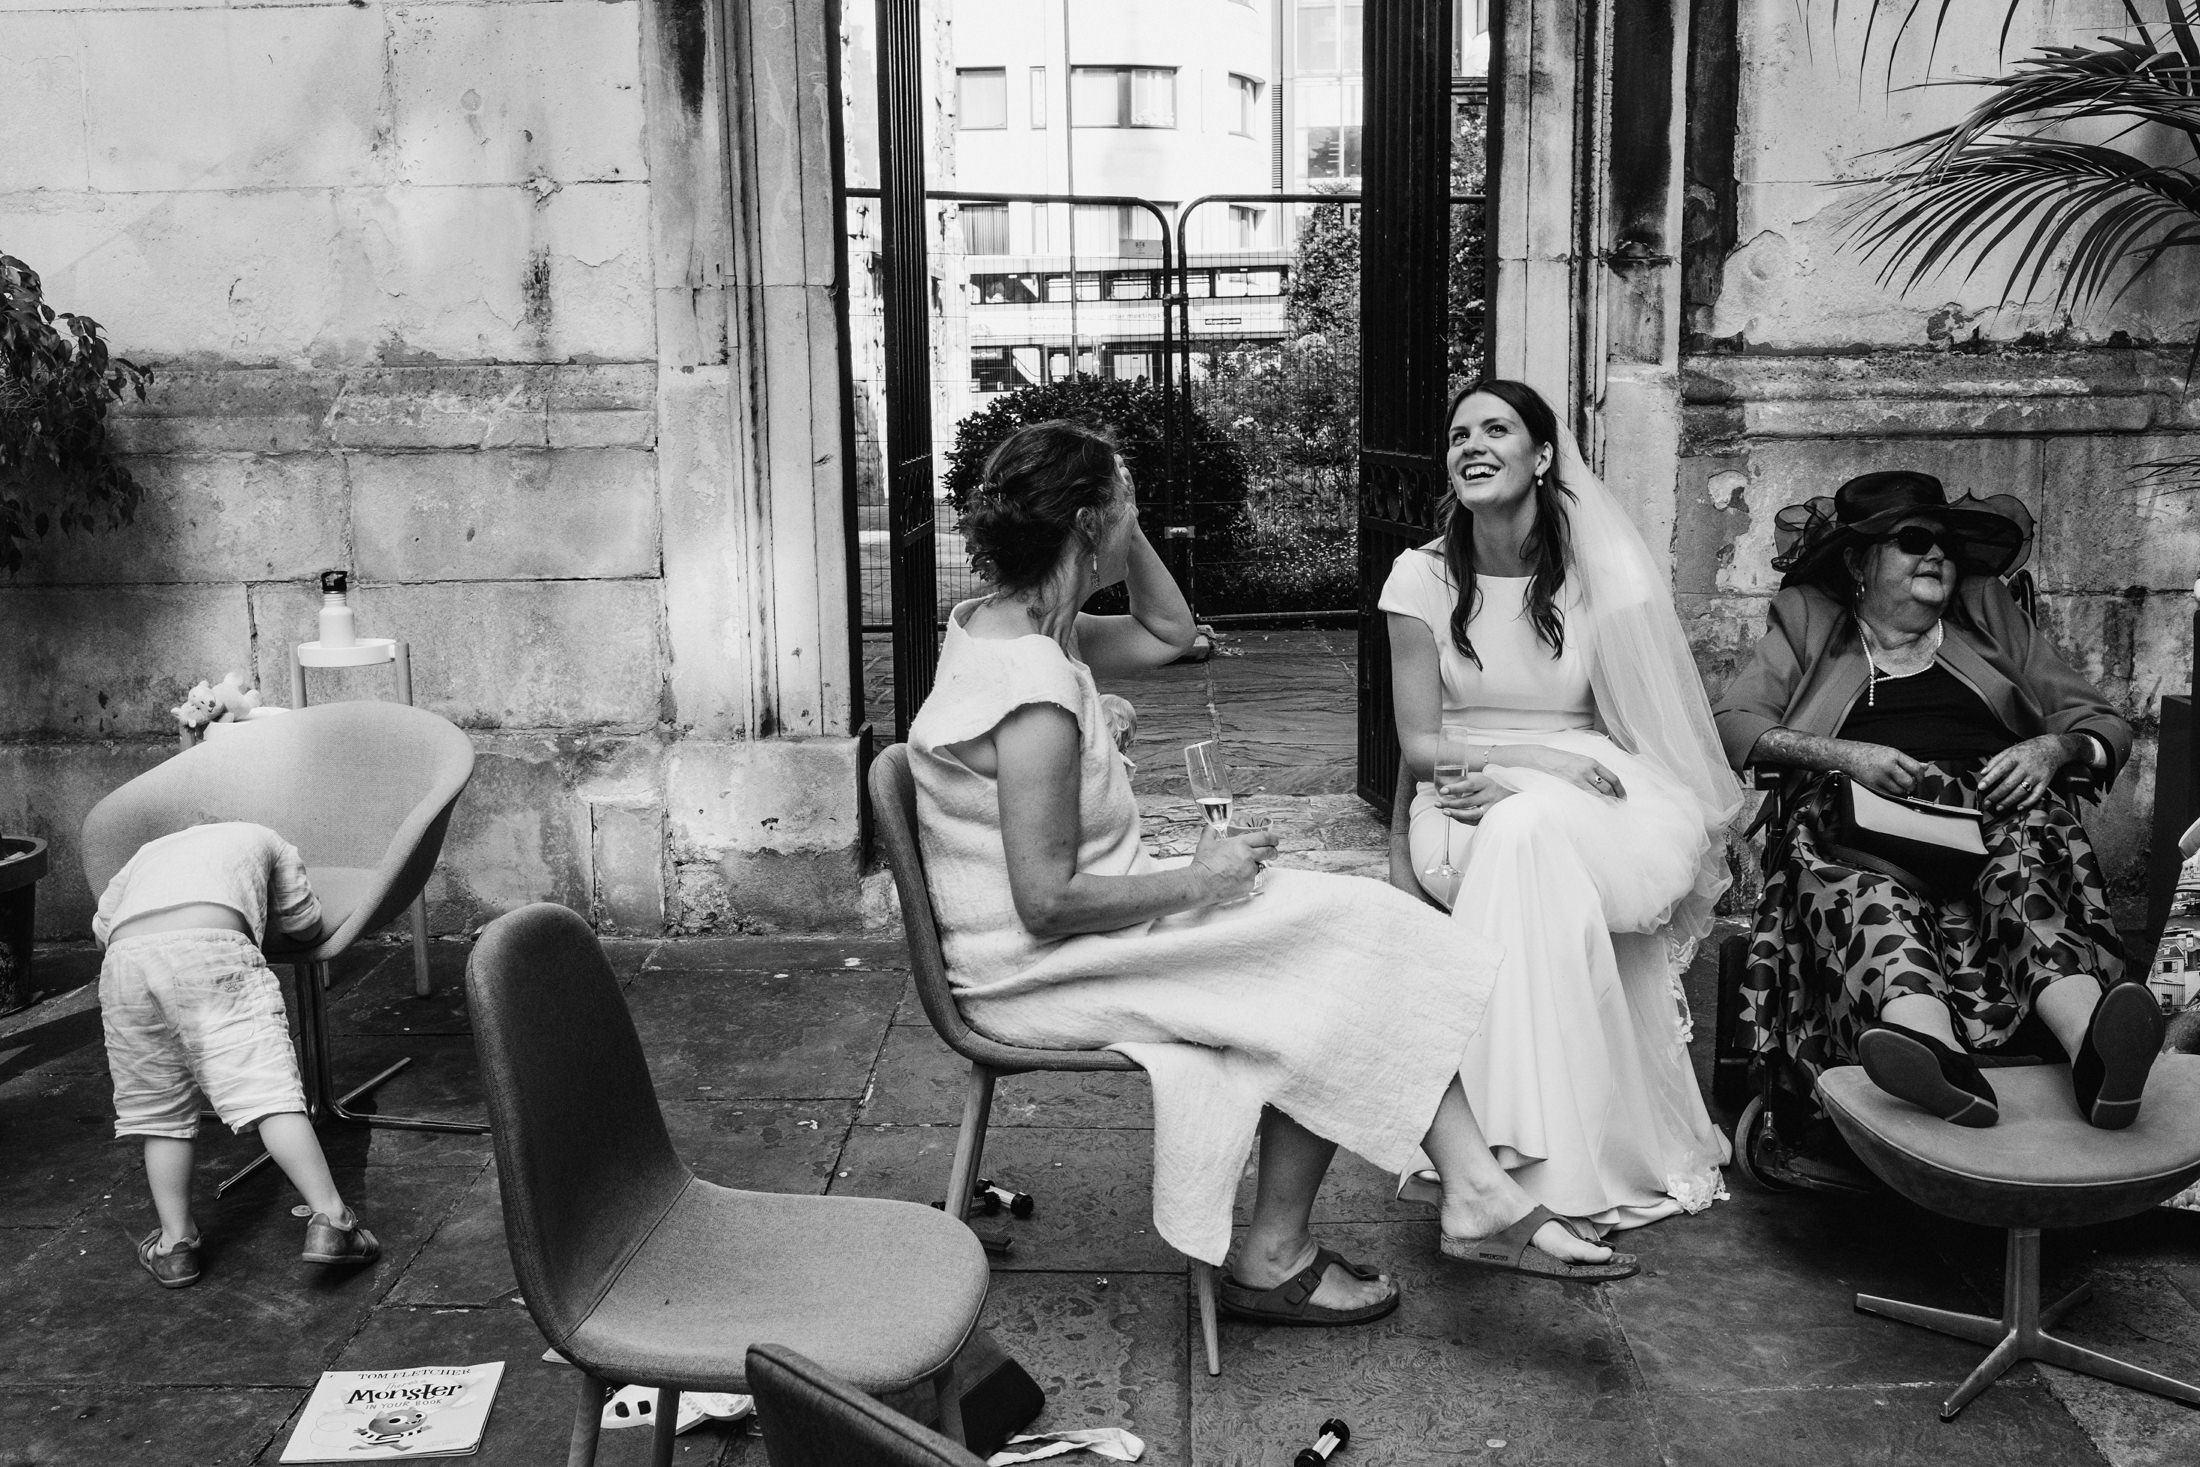 "In a courtyard at an outdoor wedding ceremony in London a smiling woman in sunglasses (right) rests her feet on a footrest. Beside her the bride smiles in conversation with a female guest. On the far left of the image a little boy with his back turned to camera has placed his face on a chair, making an unusual shape. On the floor in front of him lies a book with the title ""Monster"" written in bold upon it"